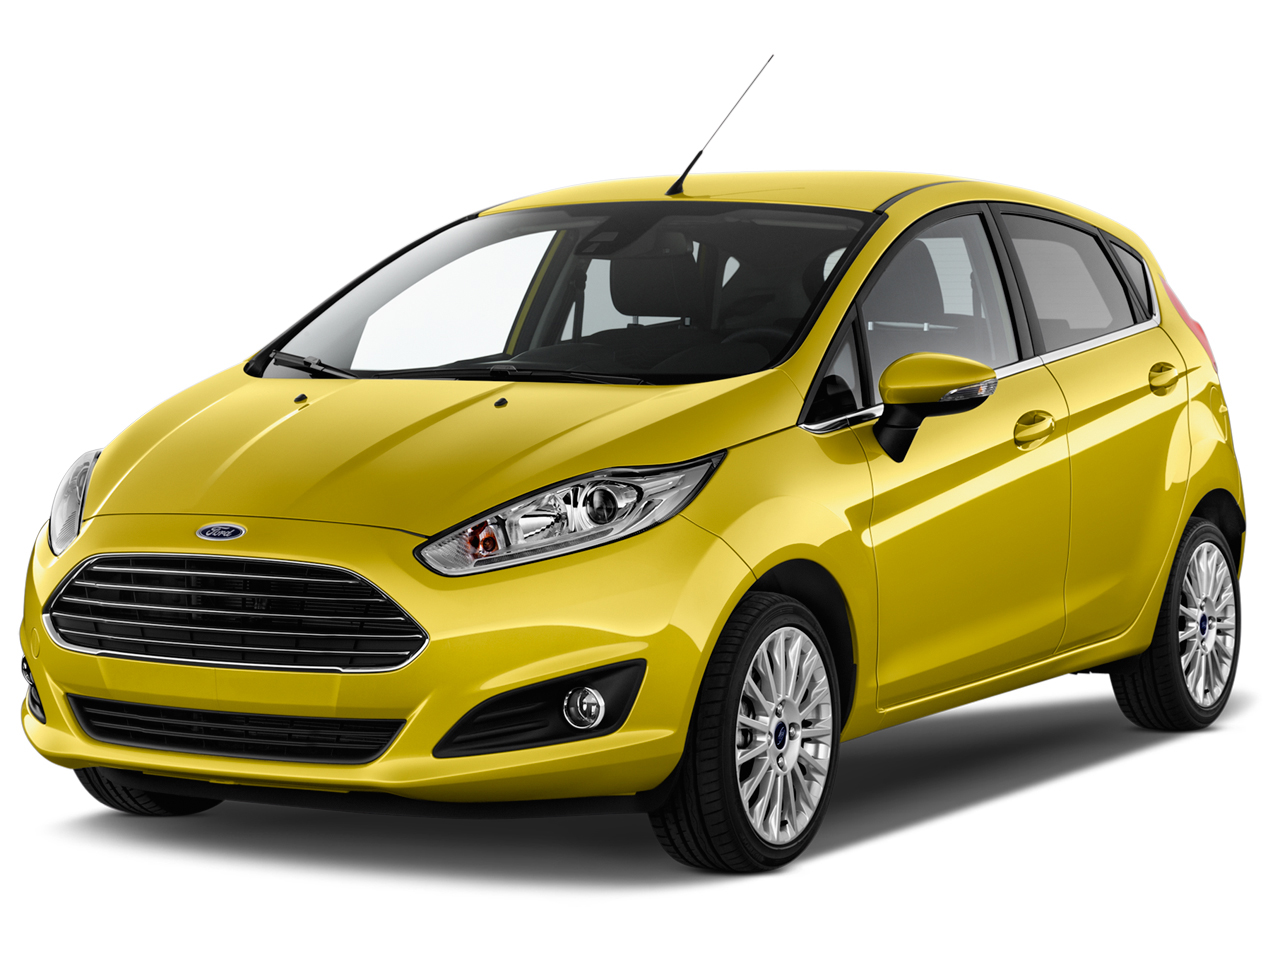 Mercedes Benz Fresno >> 2016-ford-fiesta-5dr-hb-s-angular-front-exterior-view ...